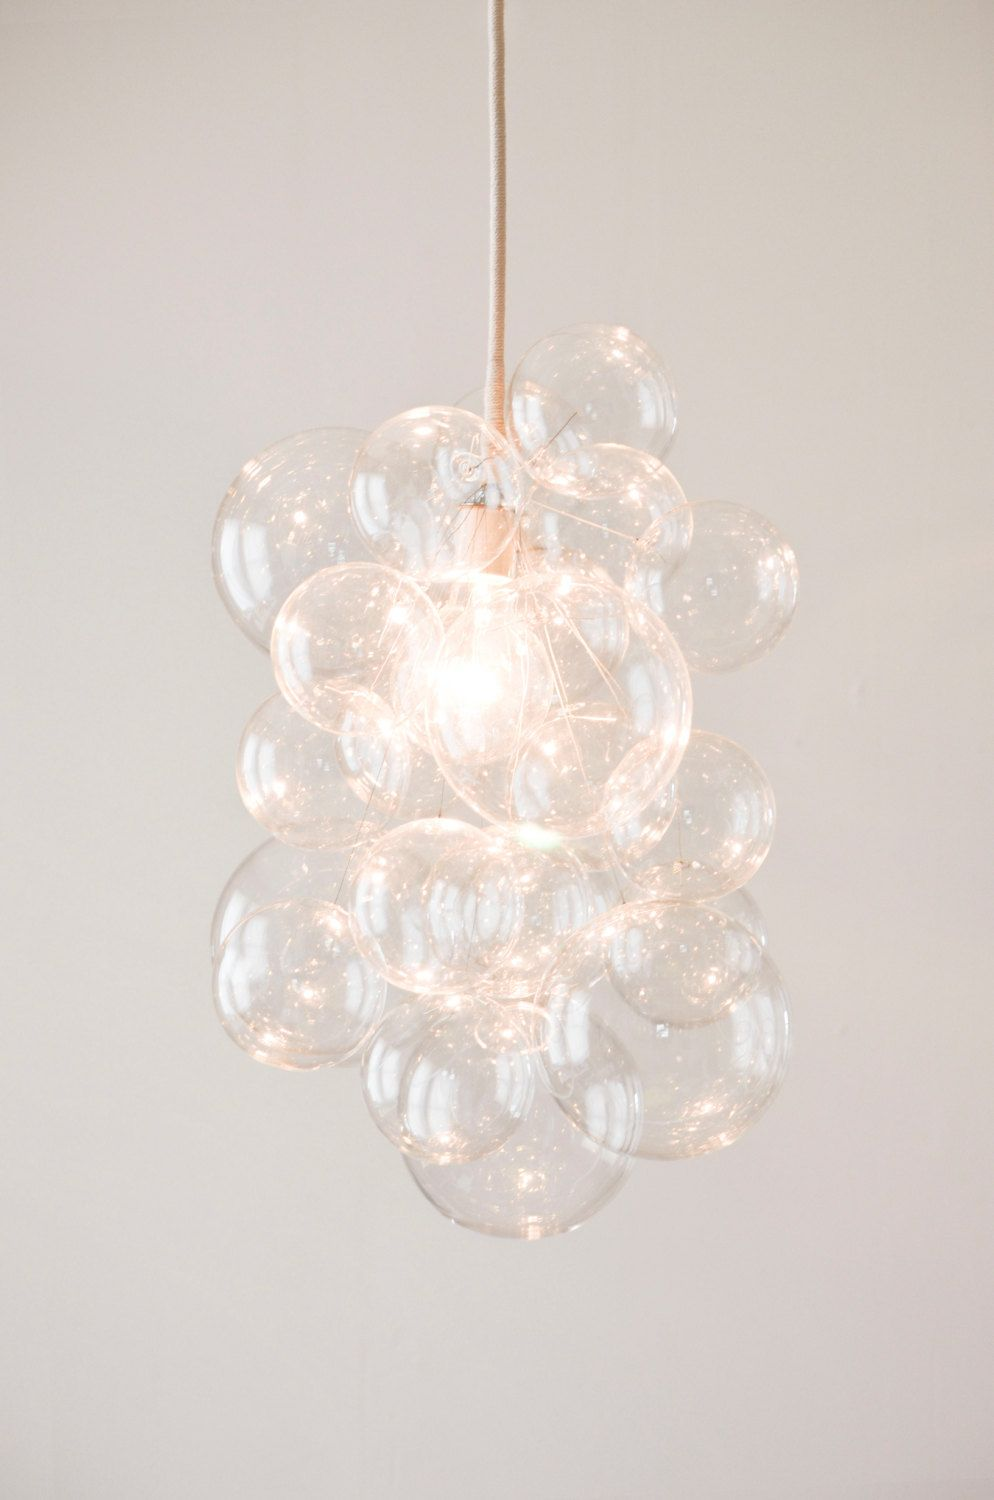 The waterfall bubble chandelier 20 tall • custom cord options